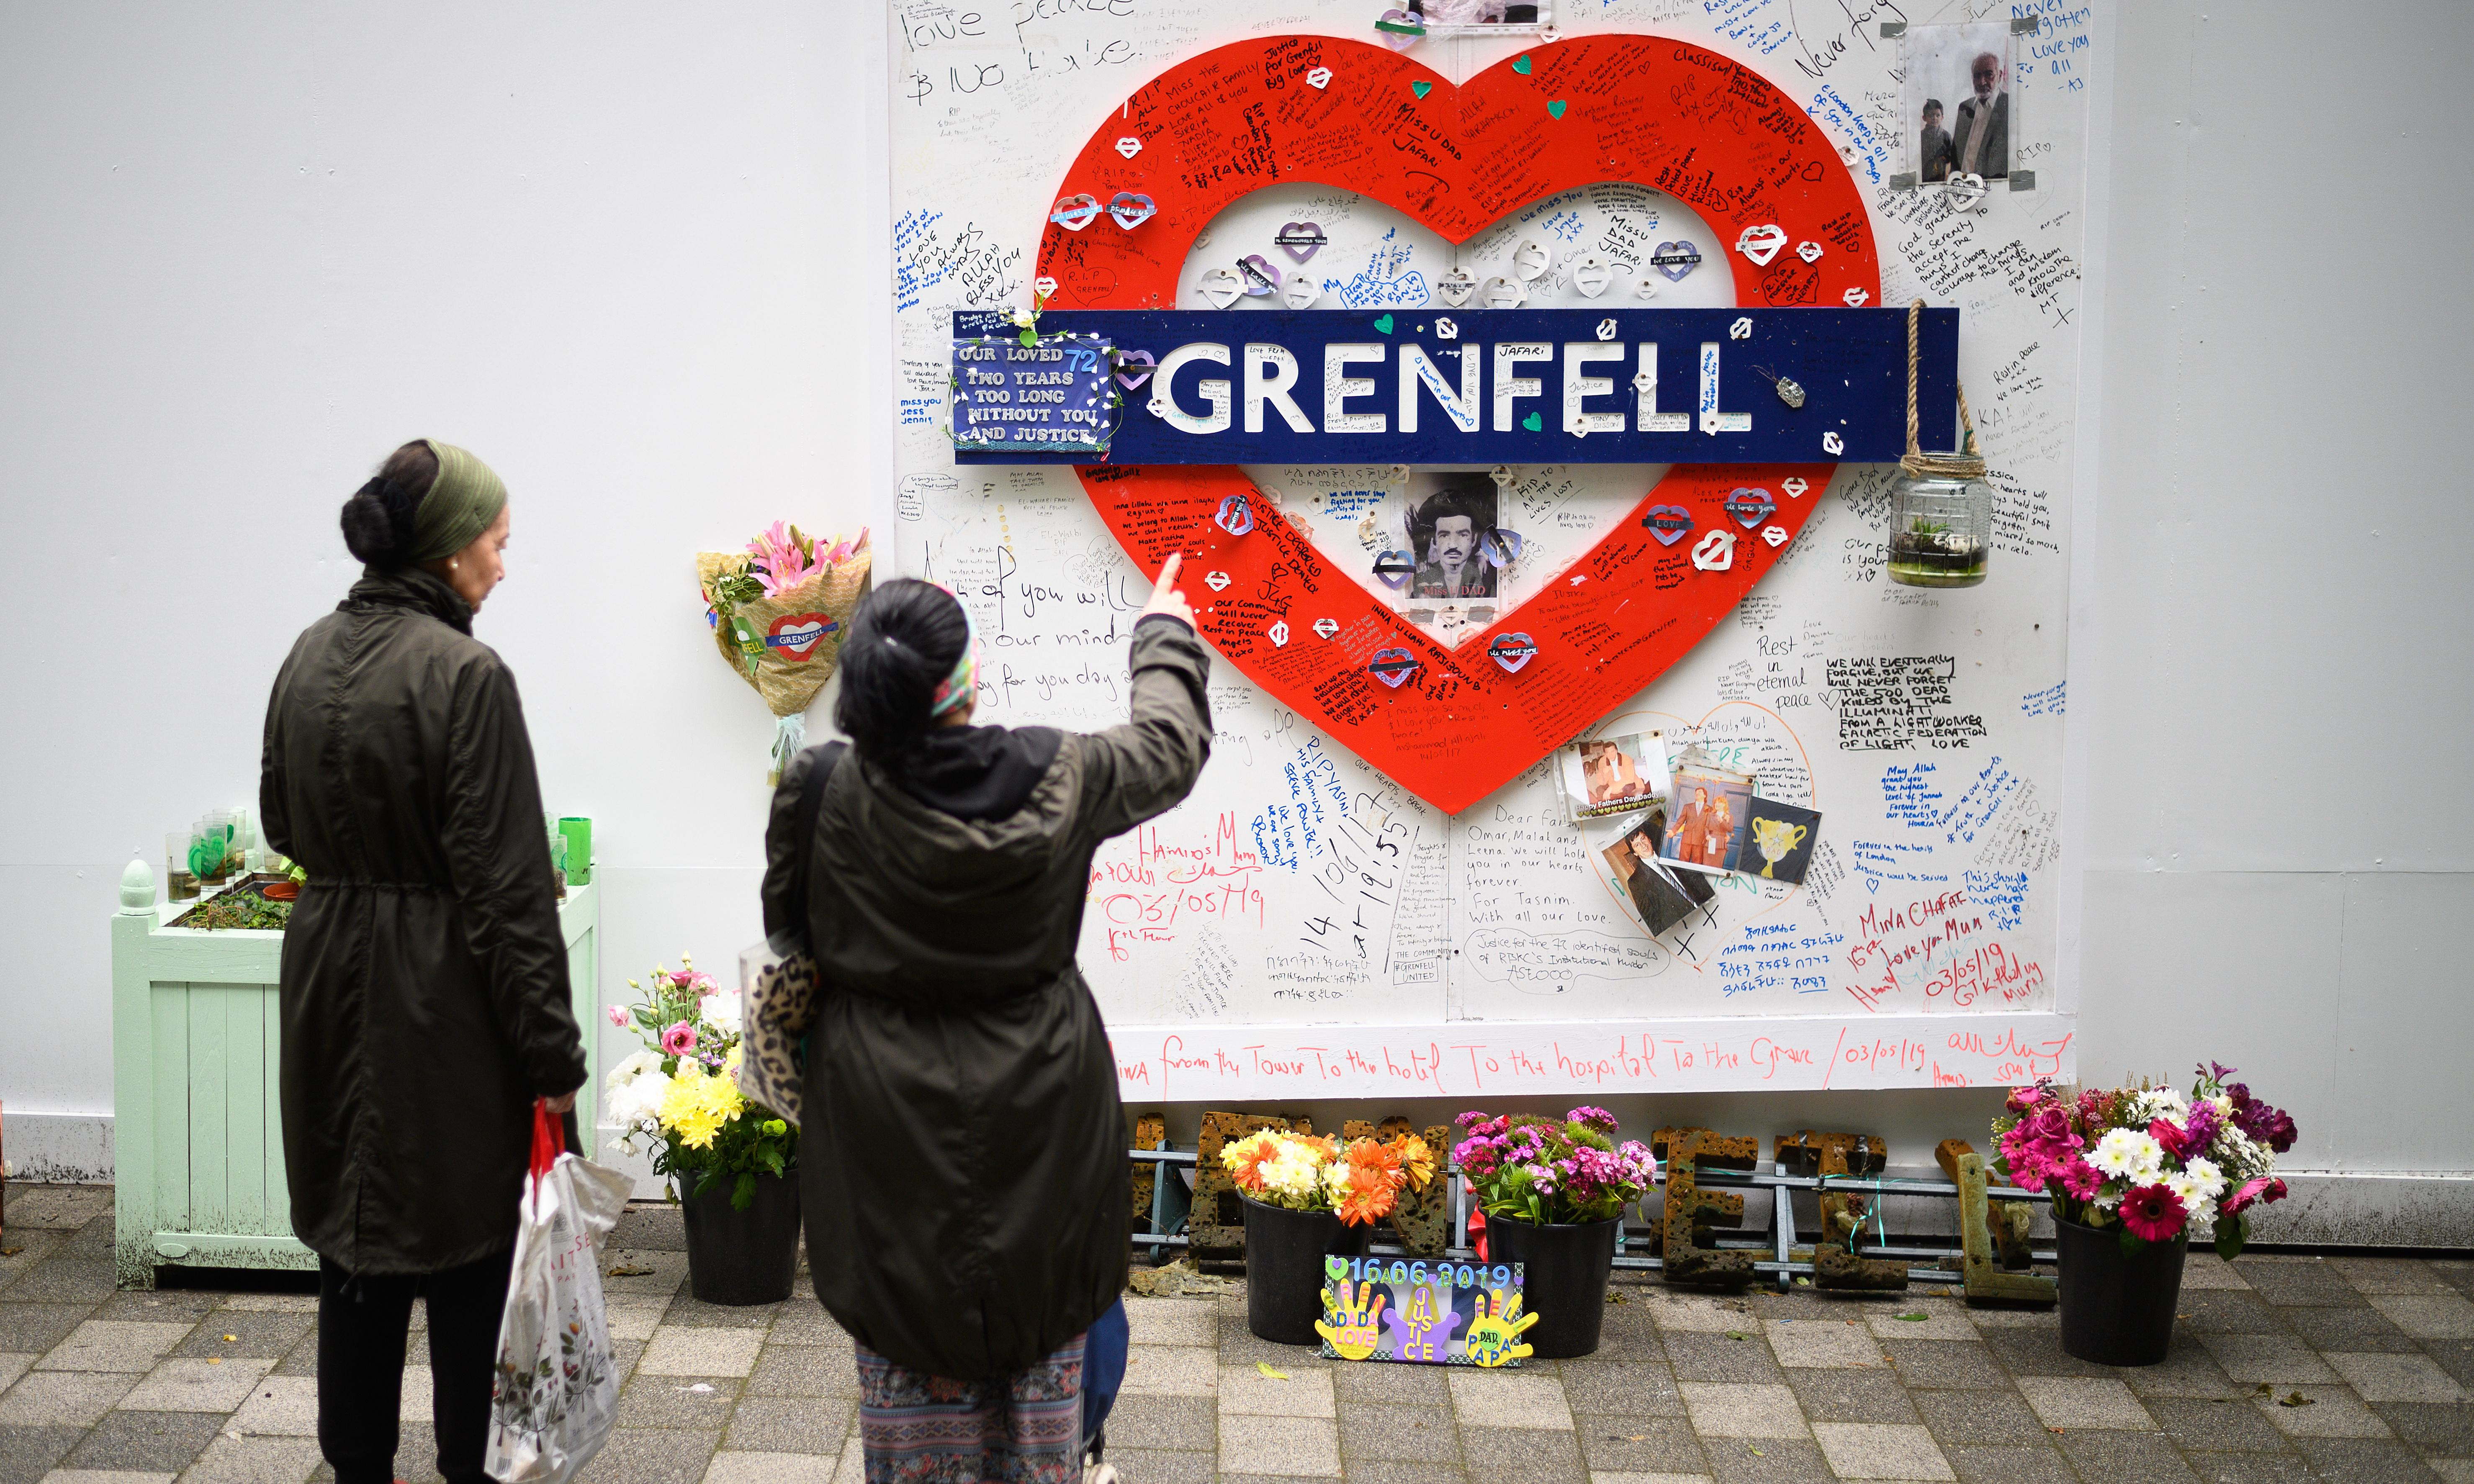 United in grief and anger, Grenfell families gather two years on